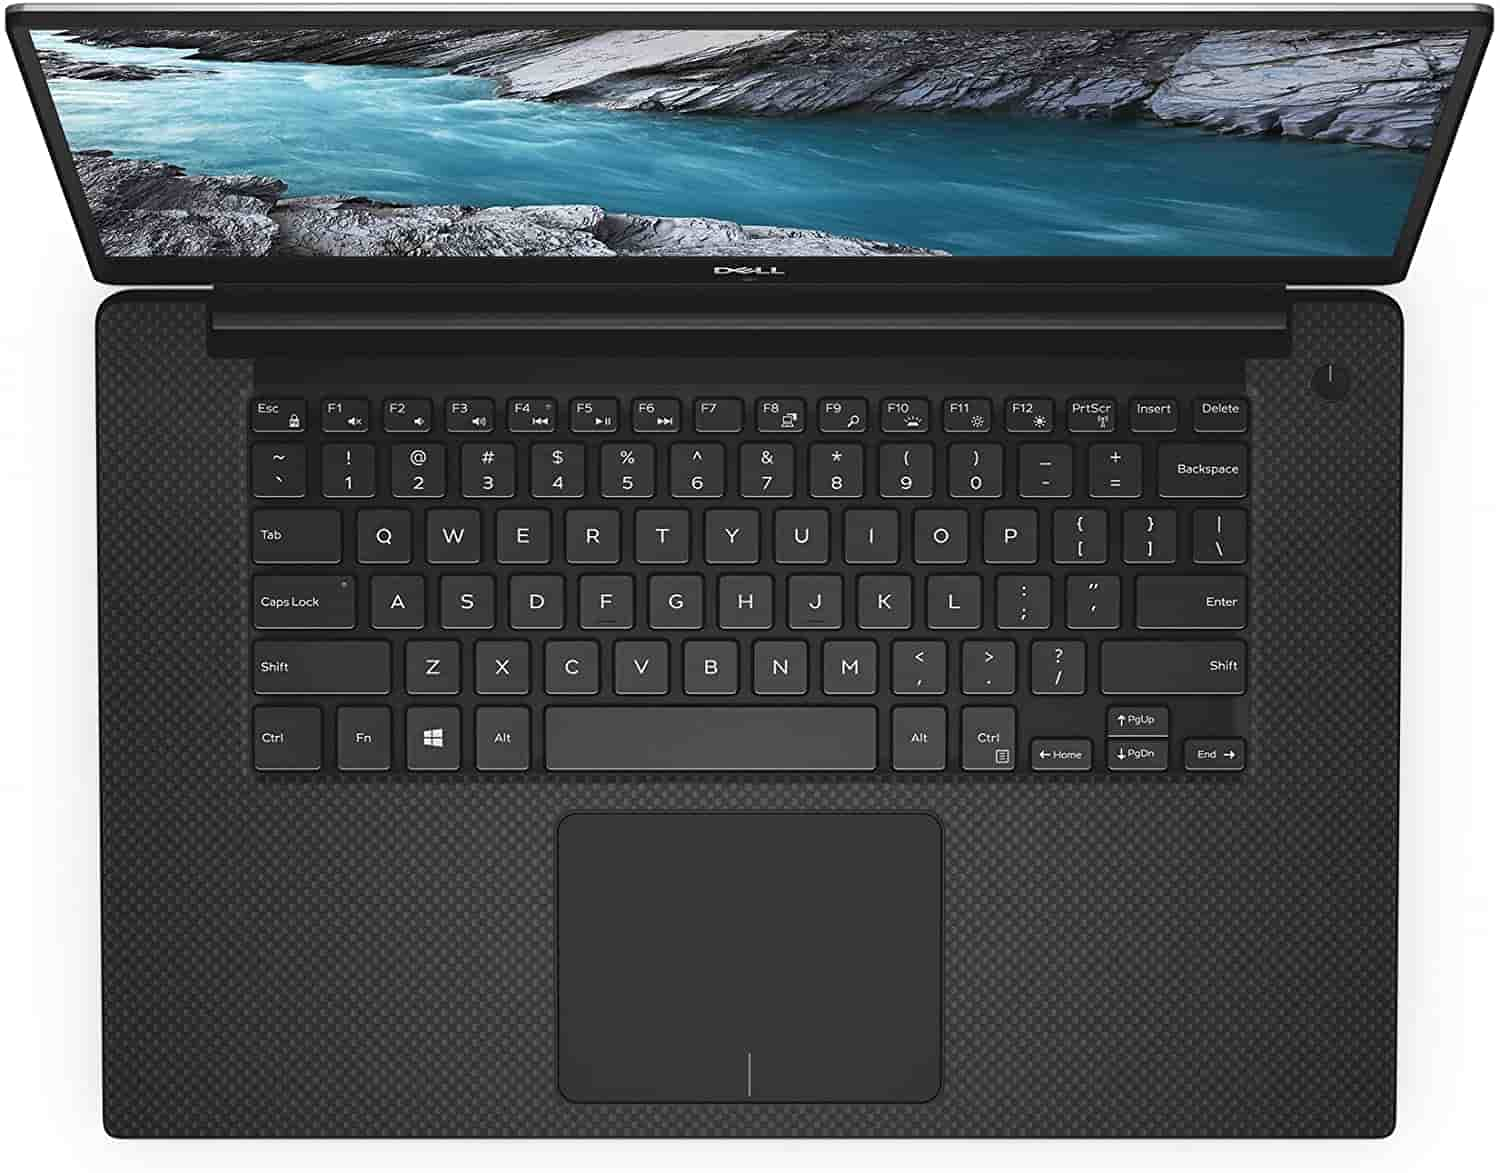 dell-xps-15-7590-i7-9750h-gtx-1650-silver-touchpad-keyboard_1589508203.jpg